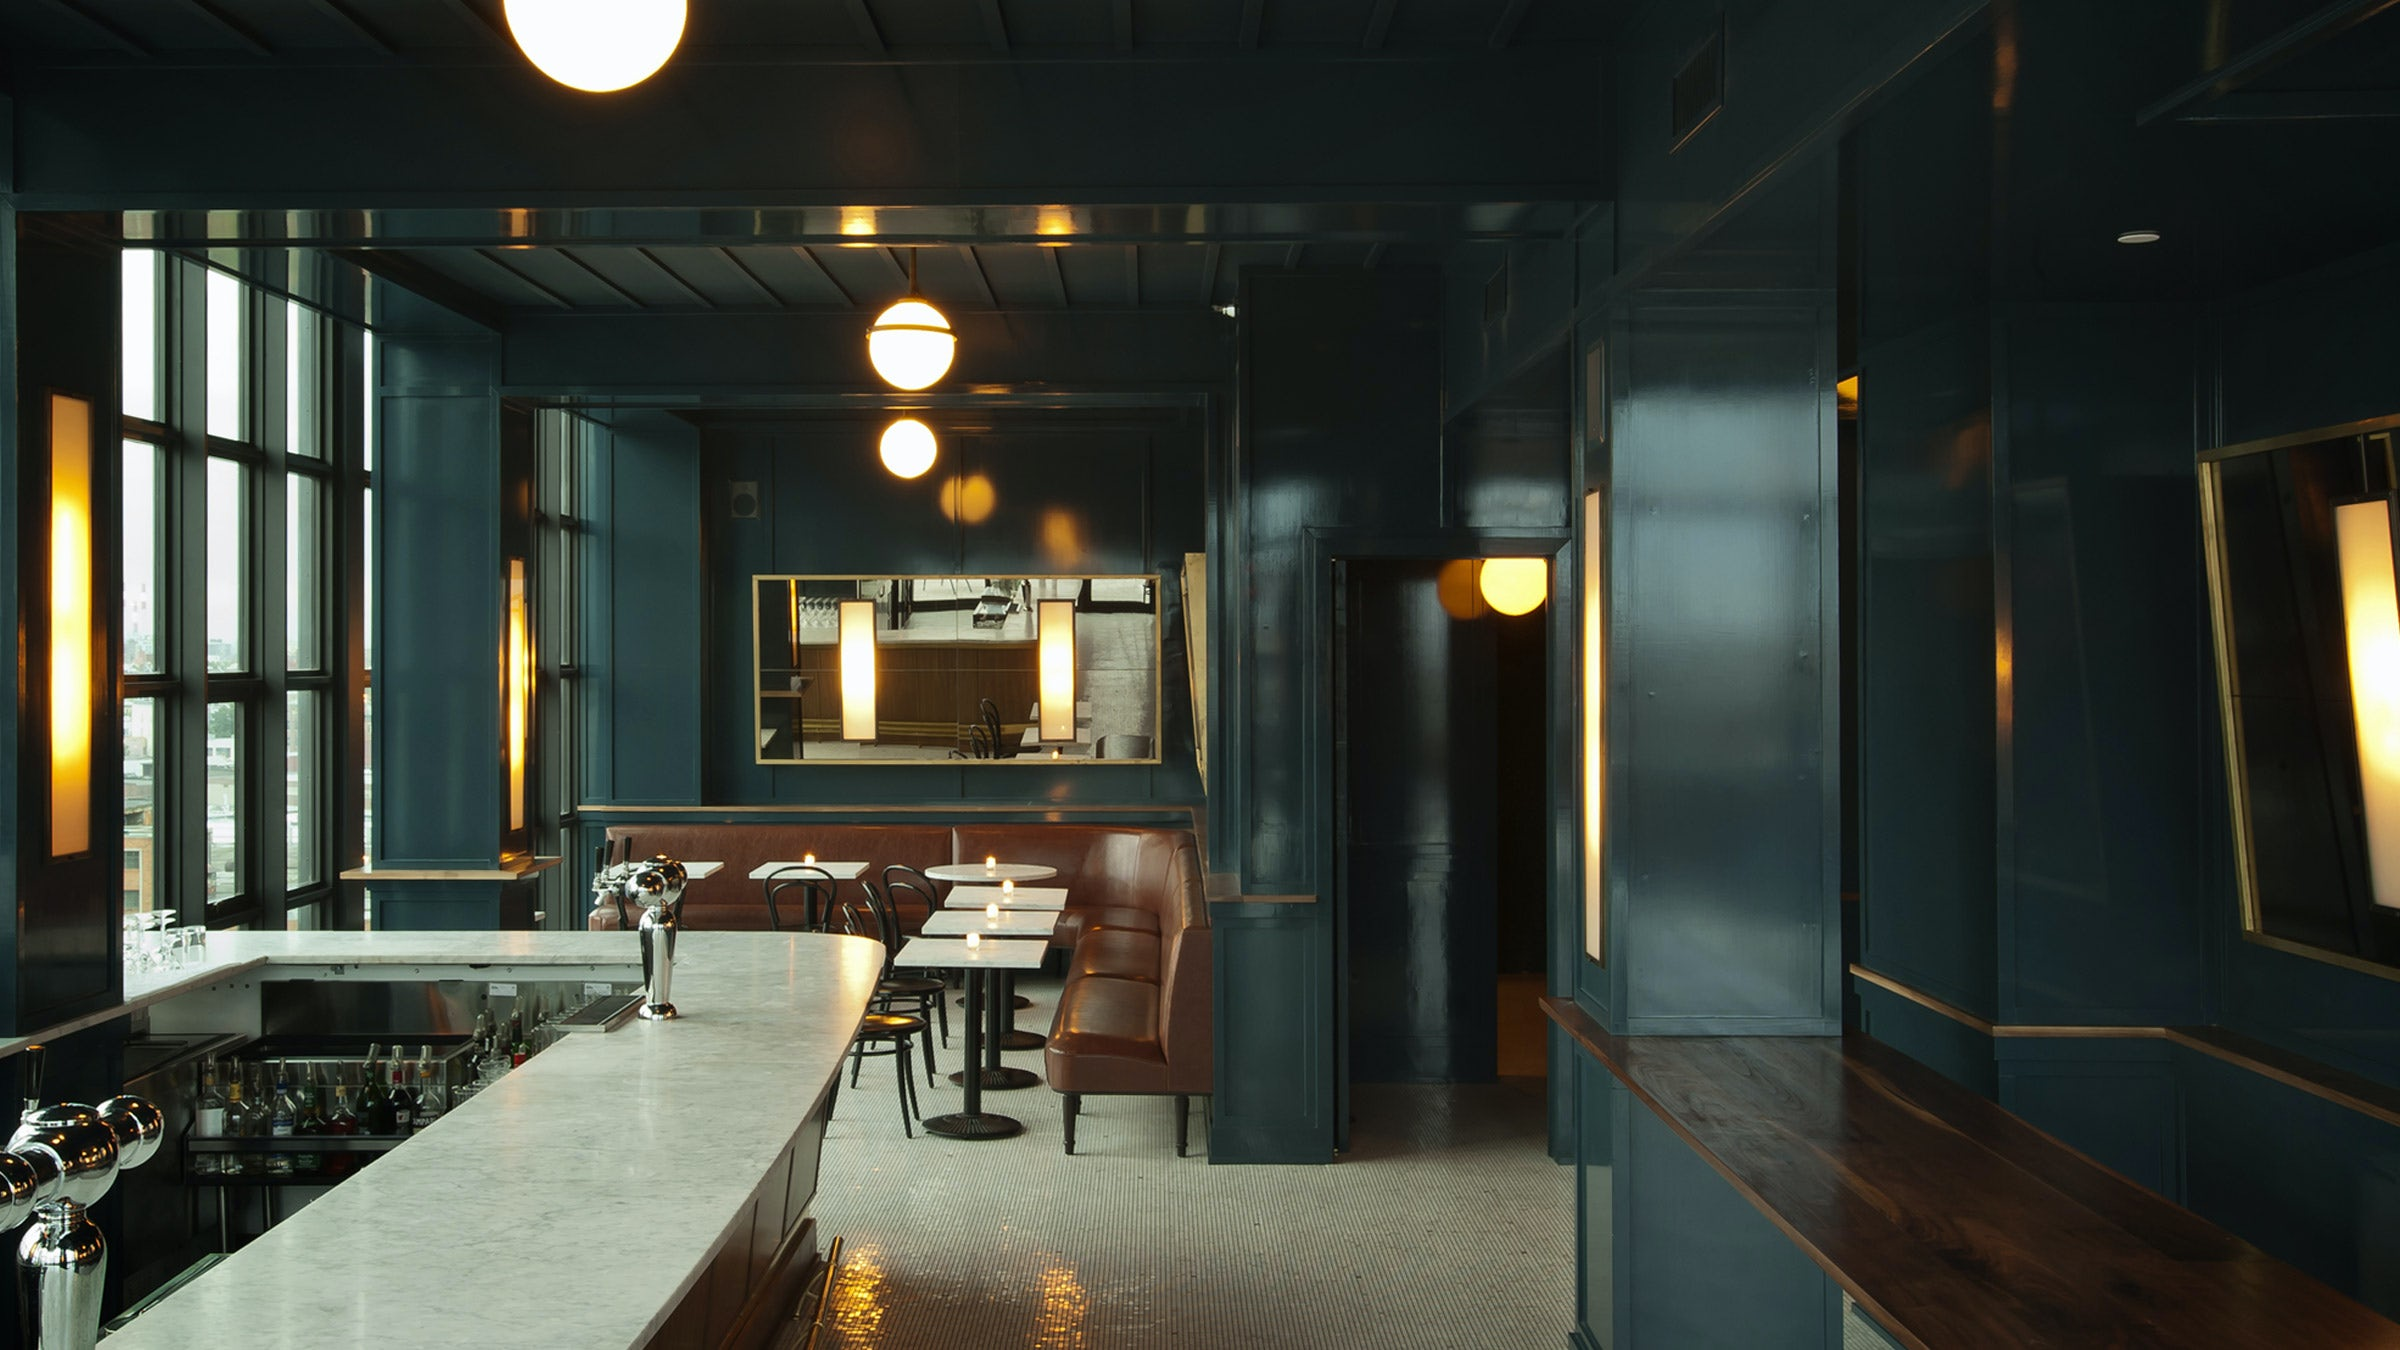 gallery image for The Ides Bar